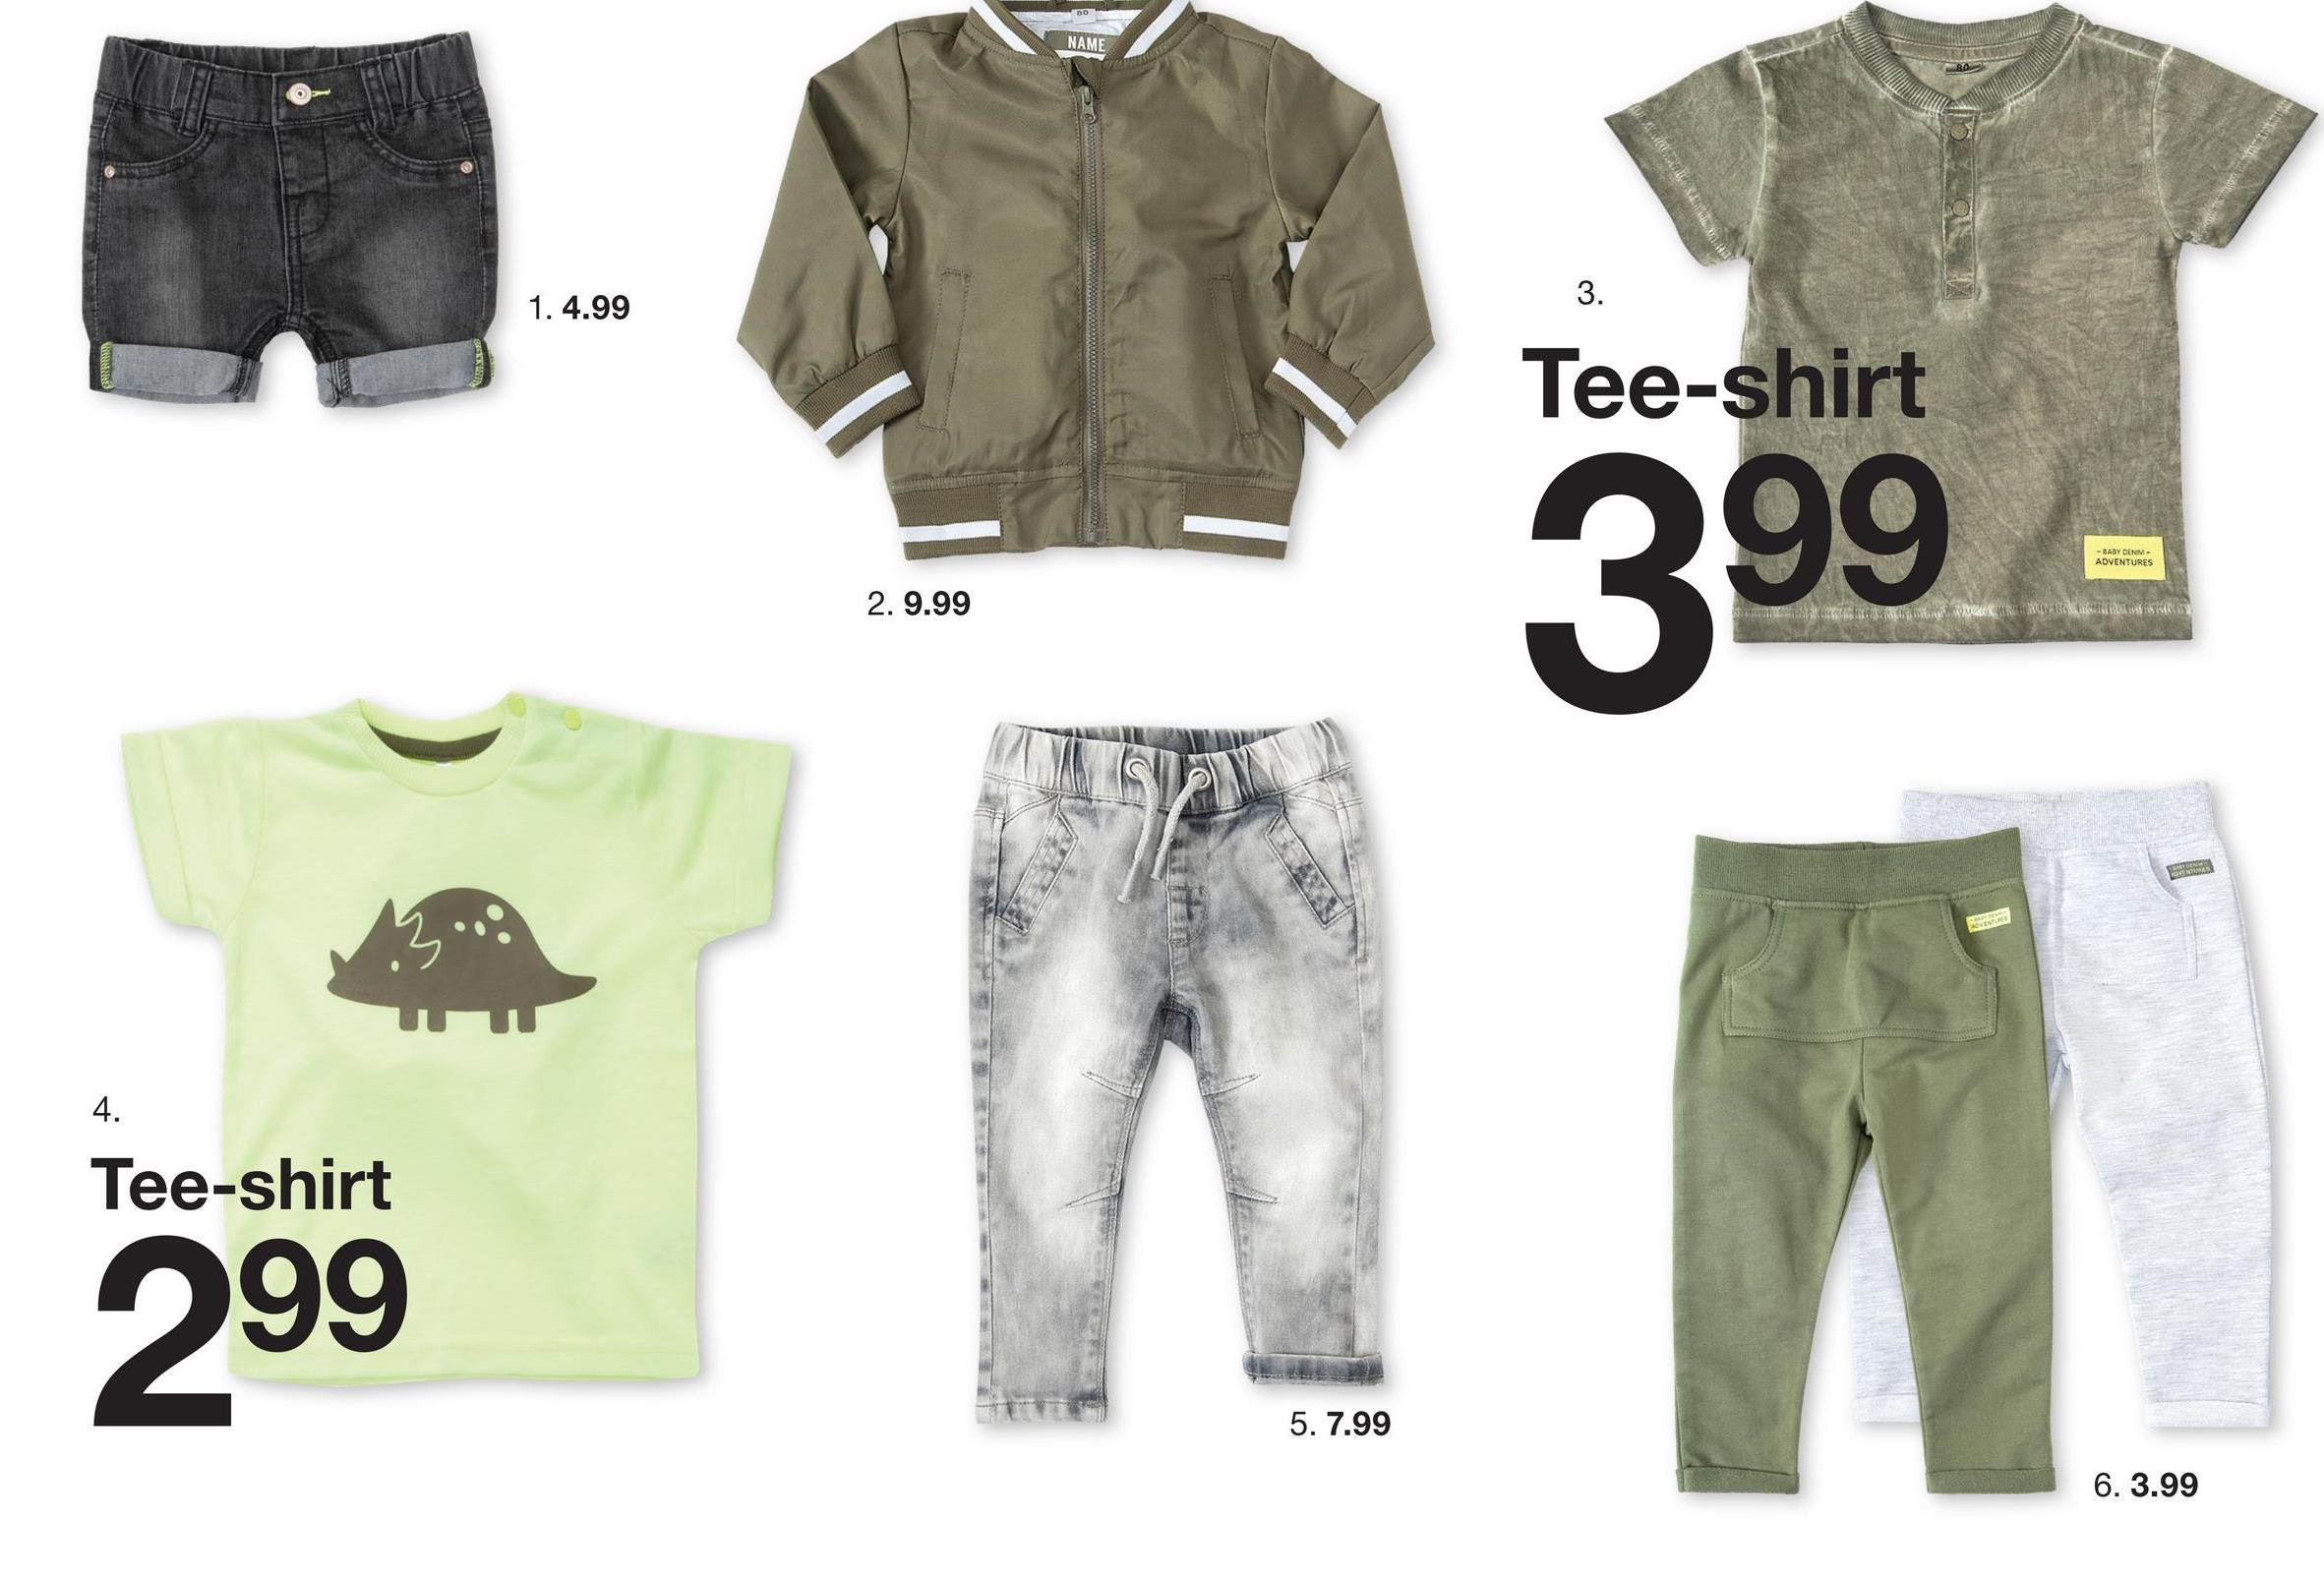 NAME 1. 4.99 1. 3. Tee-shirt 399 - -BABY CENME ADVENTURES 2. 9.99 KUN WIR Tee-shirt 299 5. 7.99 6. 3.99